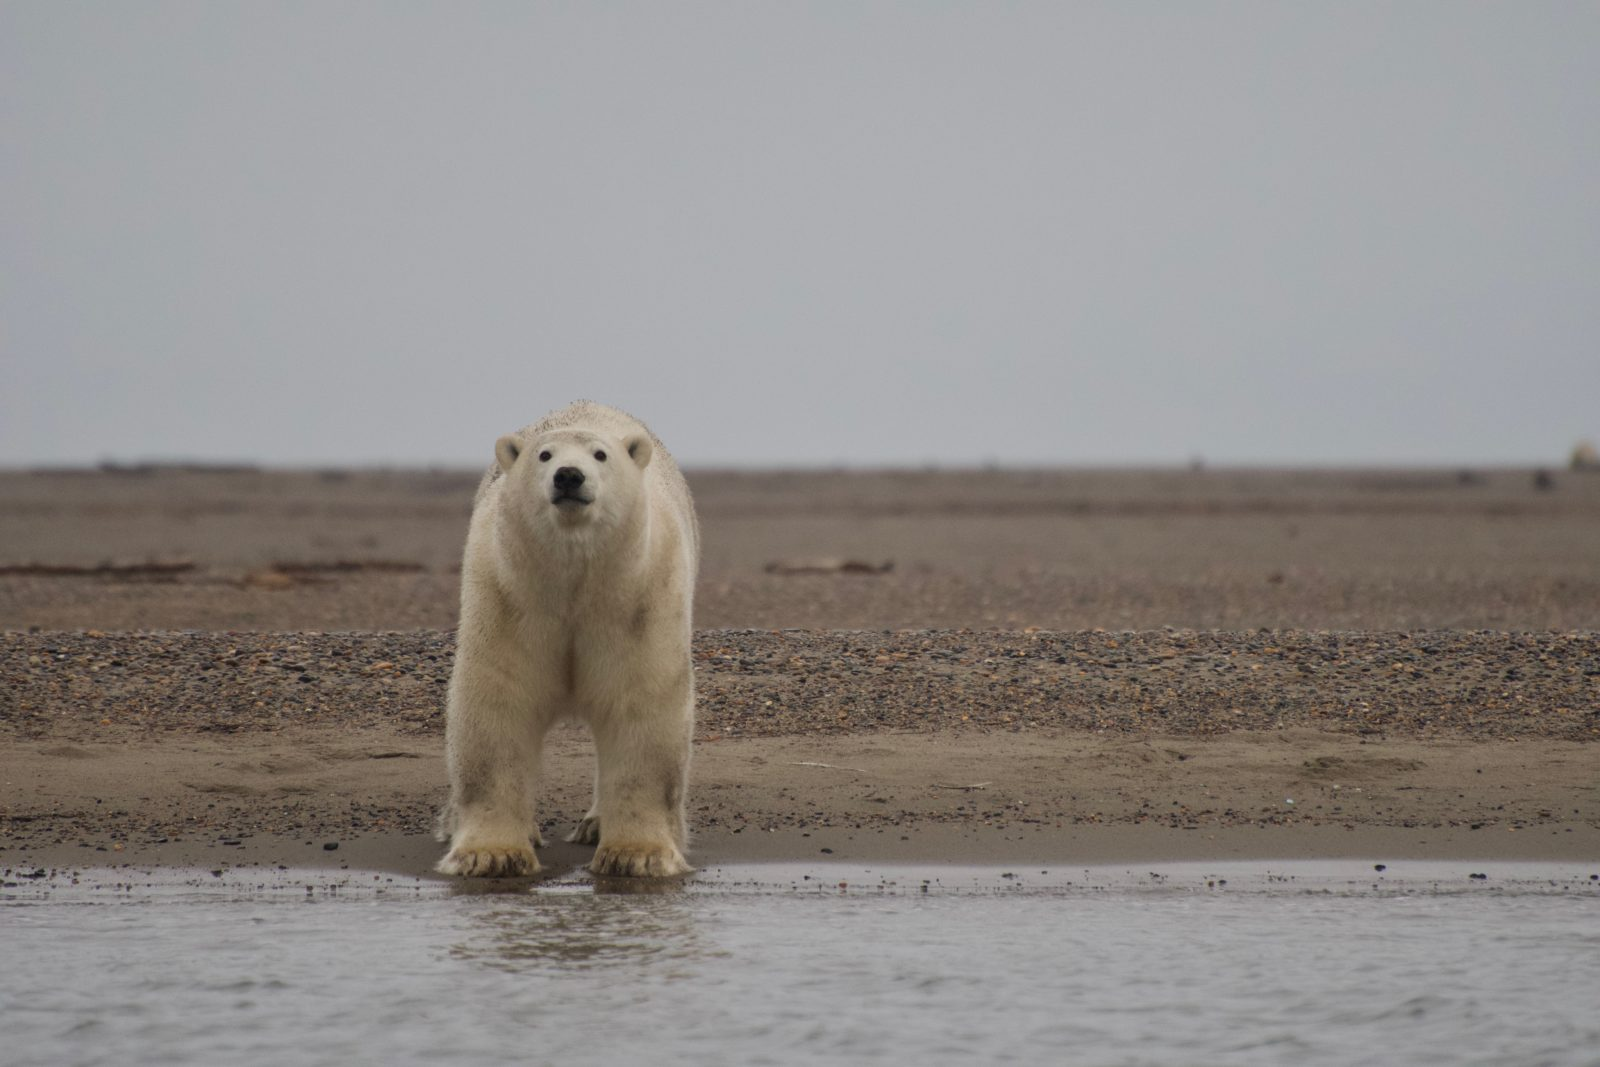 Willow project poses immediate threat to polar bears.